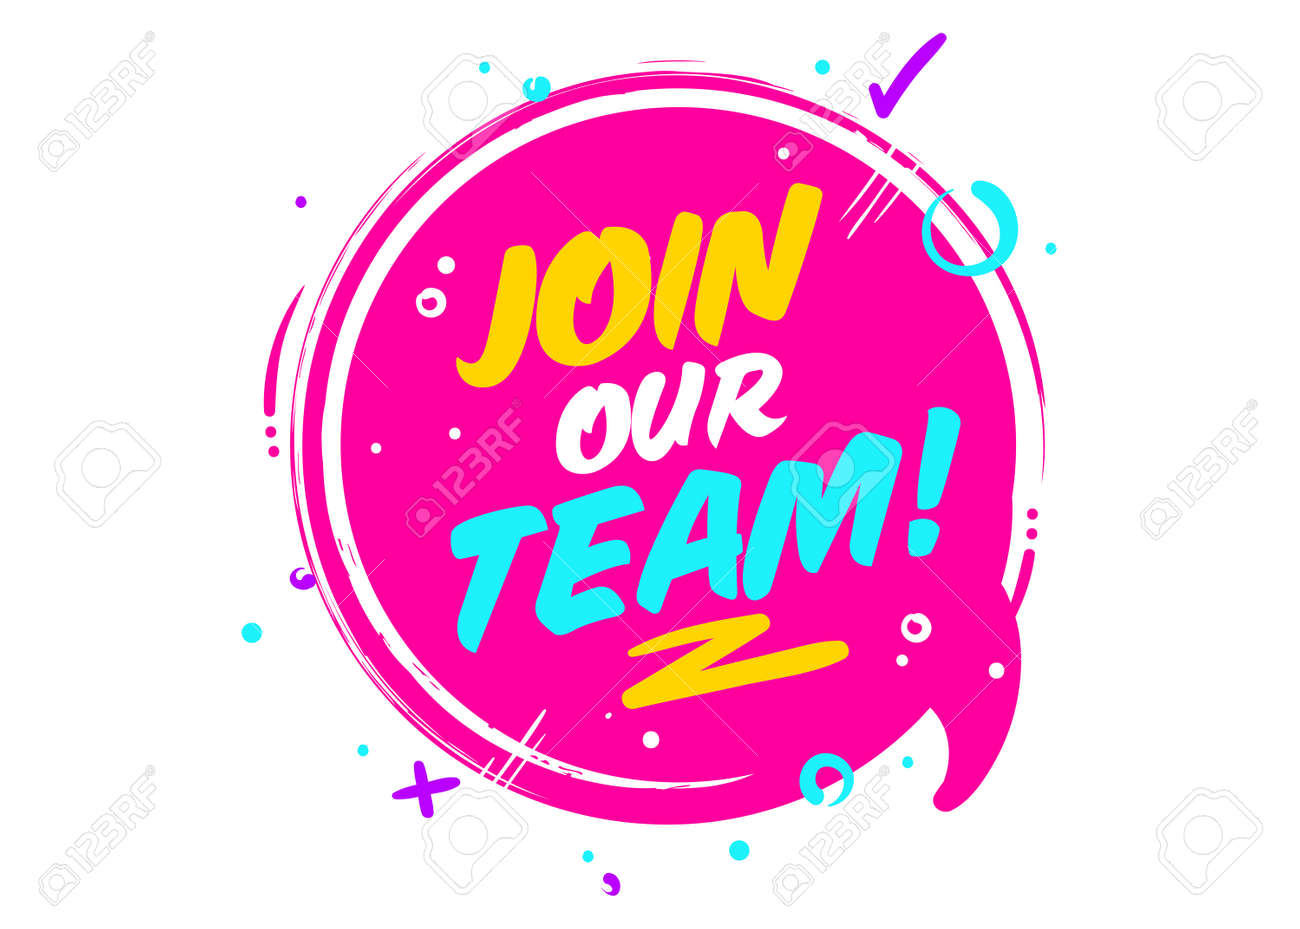 Join Our Team phrase on pink Rounded Sign with Geometric Elements. - 95139170